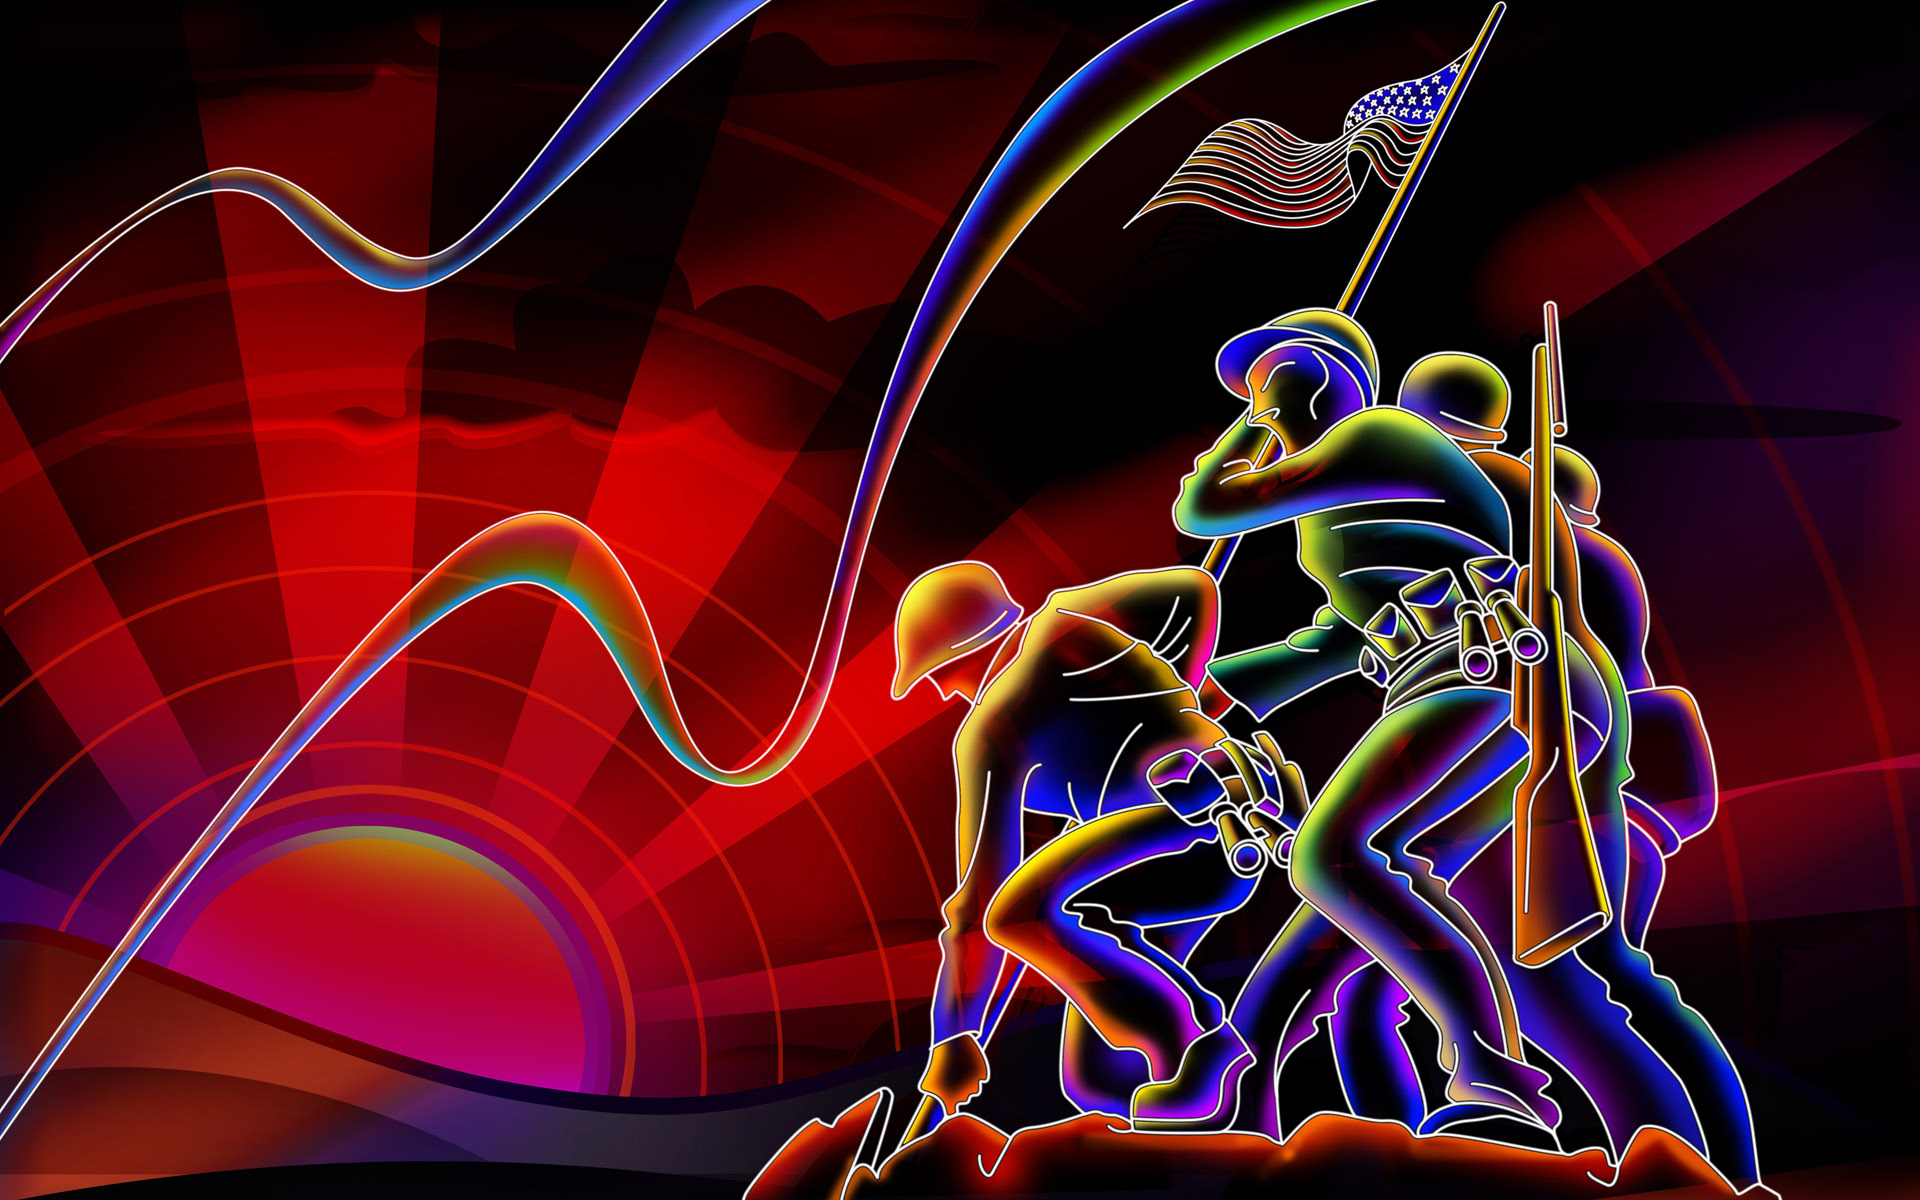 tag neon art wallpapers - photo #47